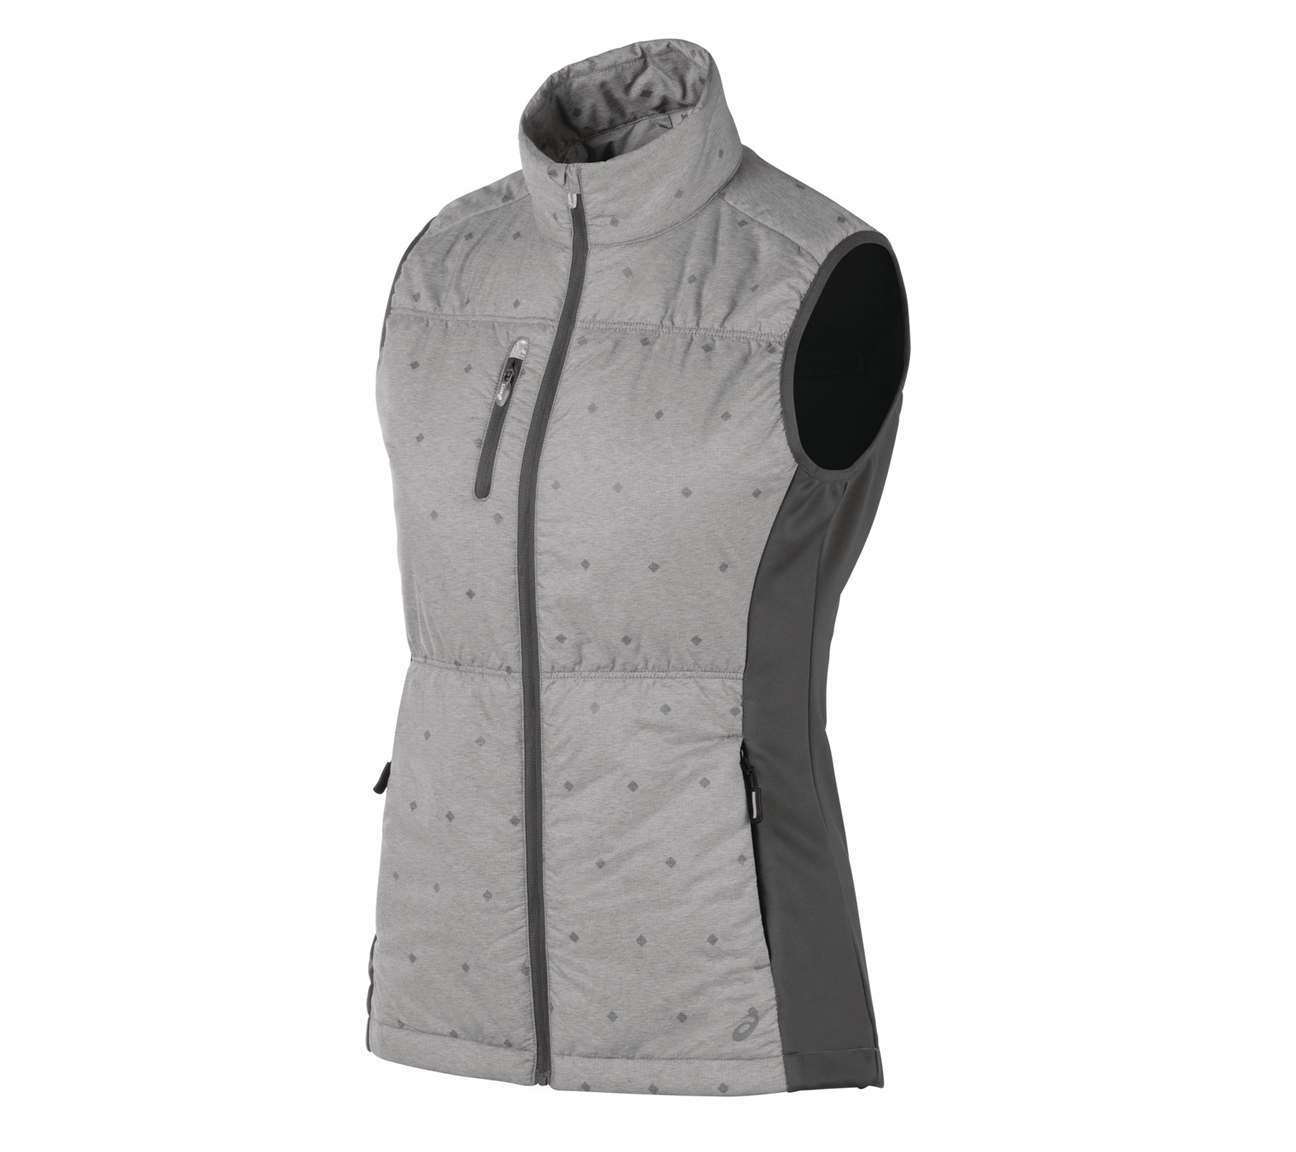 150a5de4814 Asics Puff Vest Gear We Love - Cold Weather Running